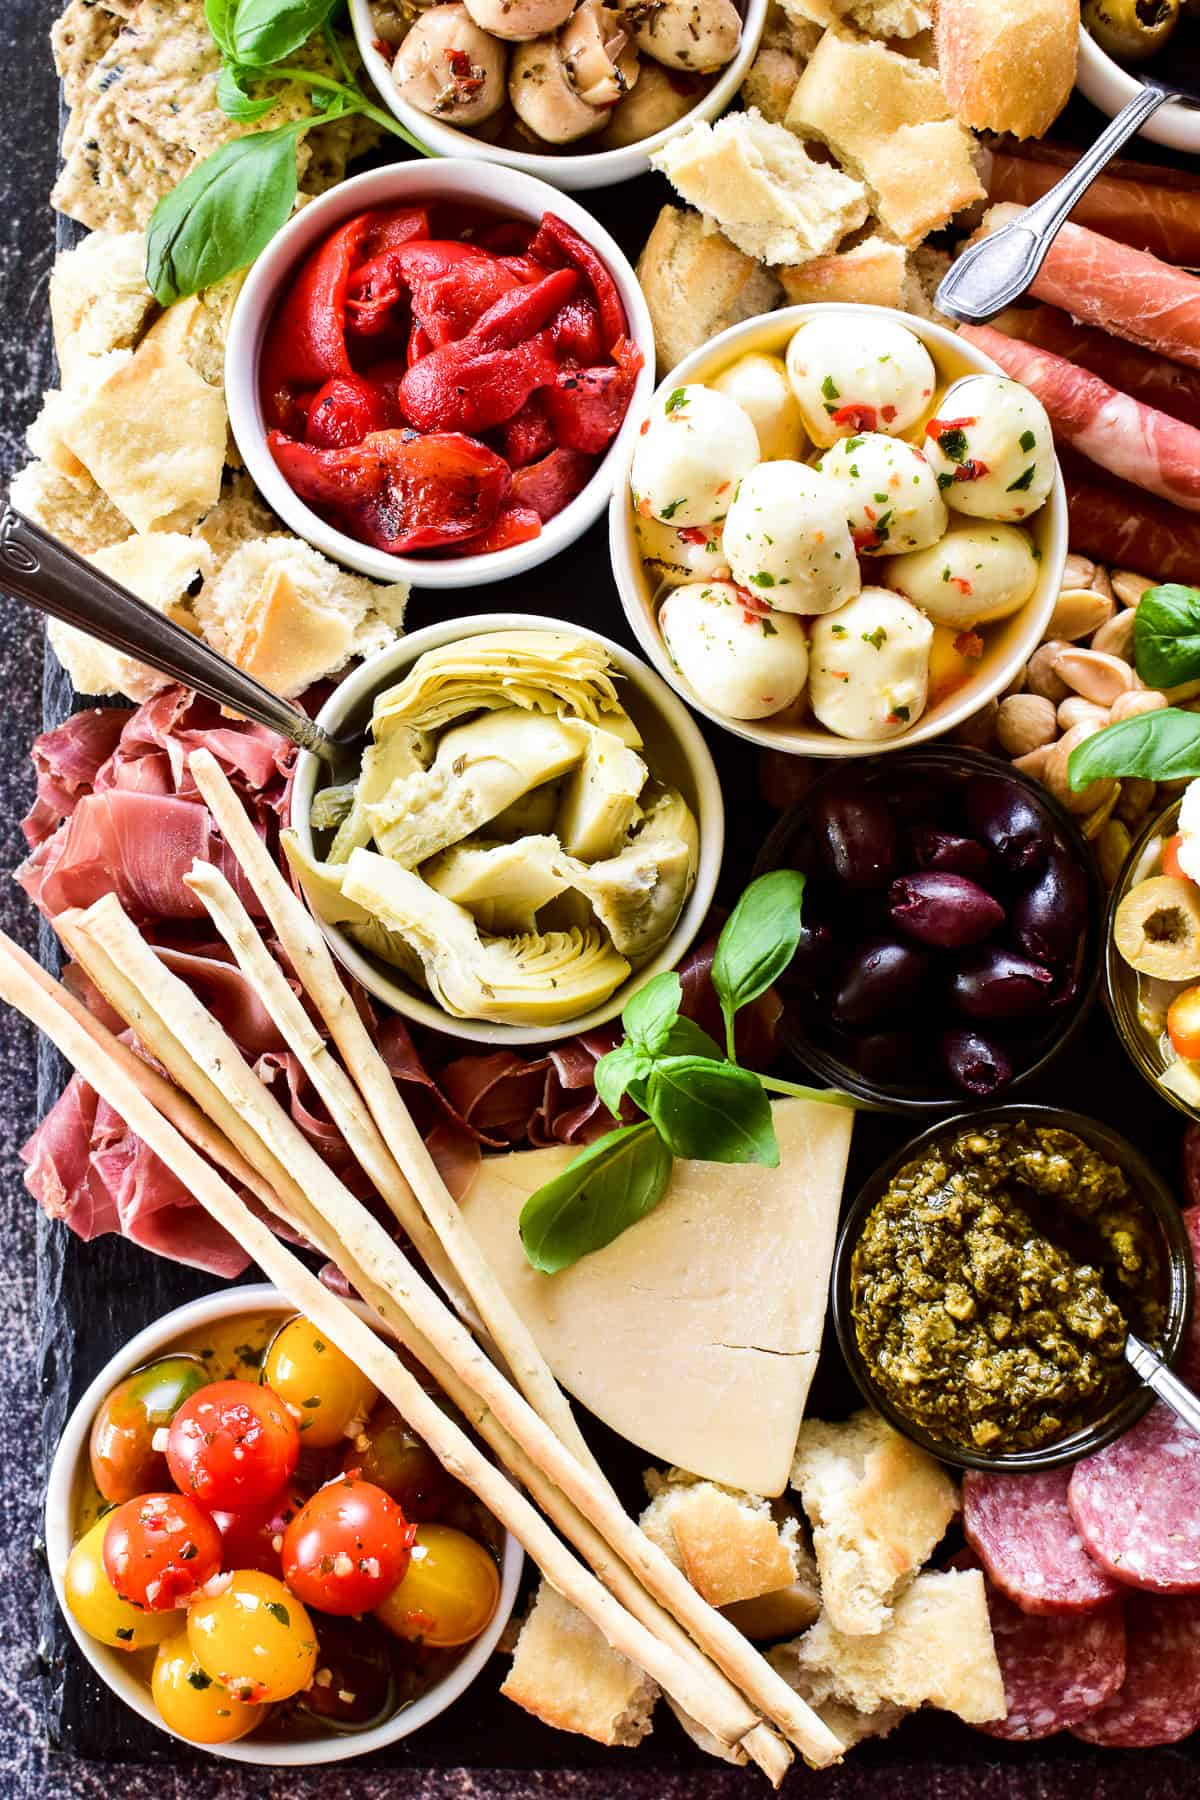 Overhead shot of veggies, meats and cheeses on antipasto platter